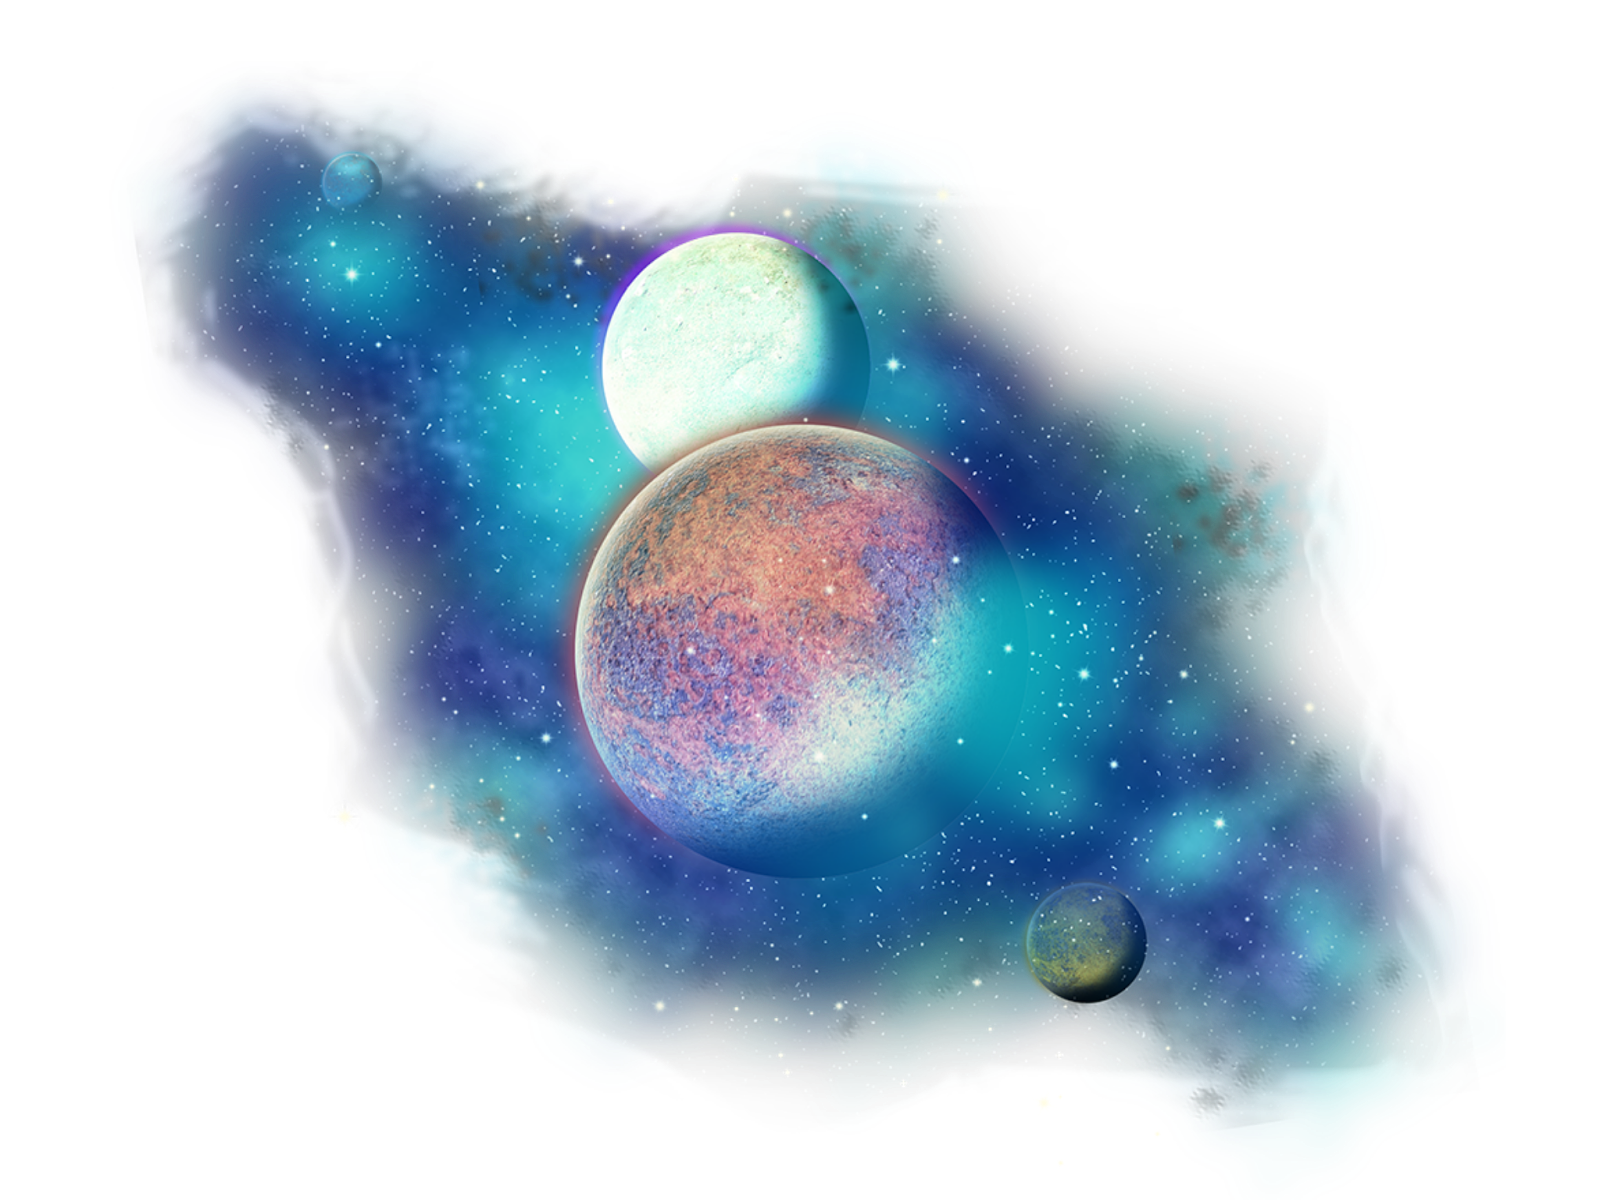 Freetoedit png stars with. Planets clipart galaxy